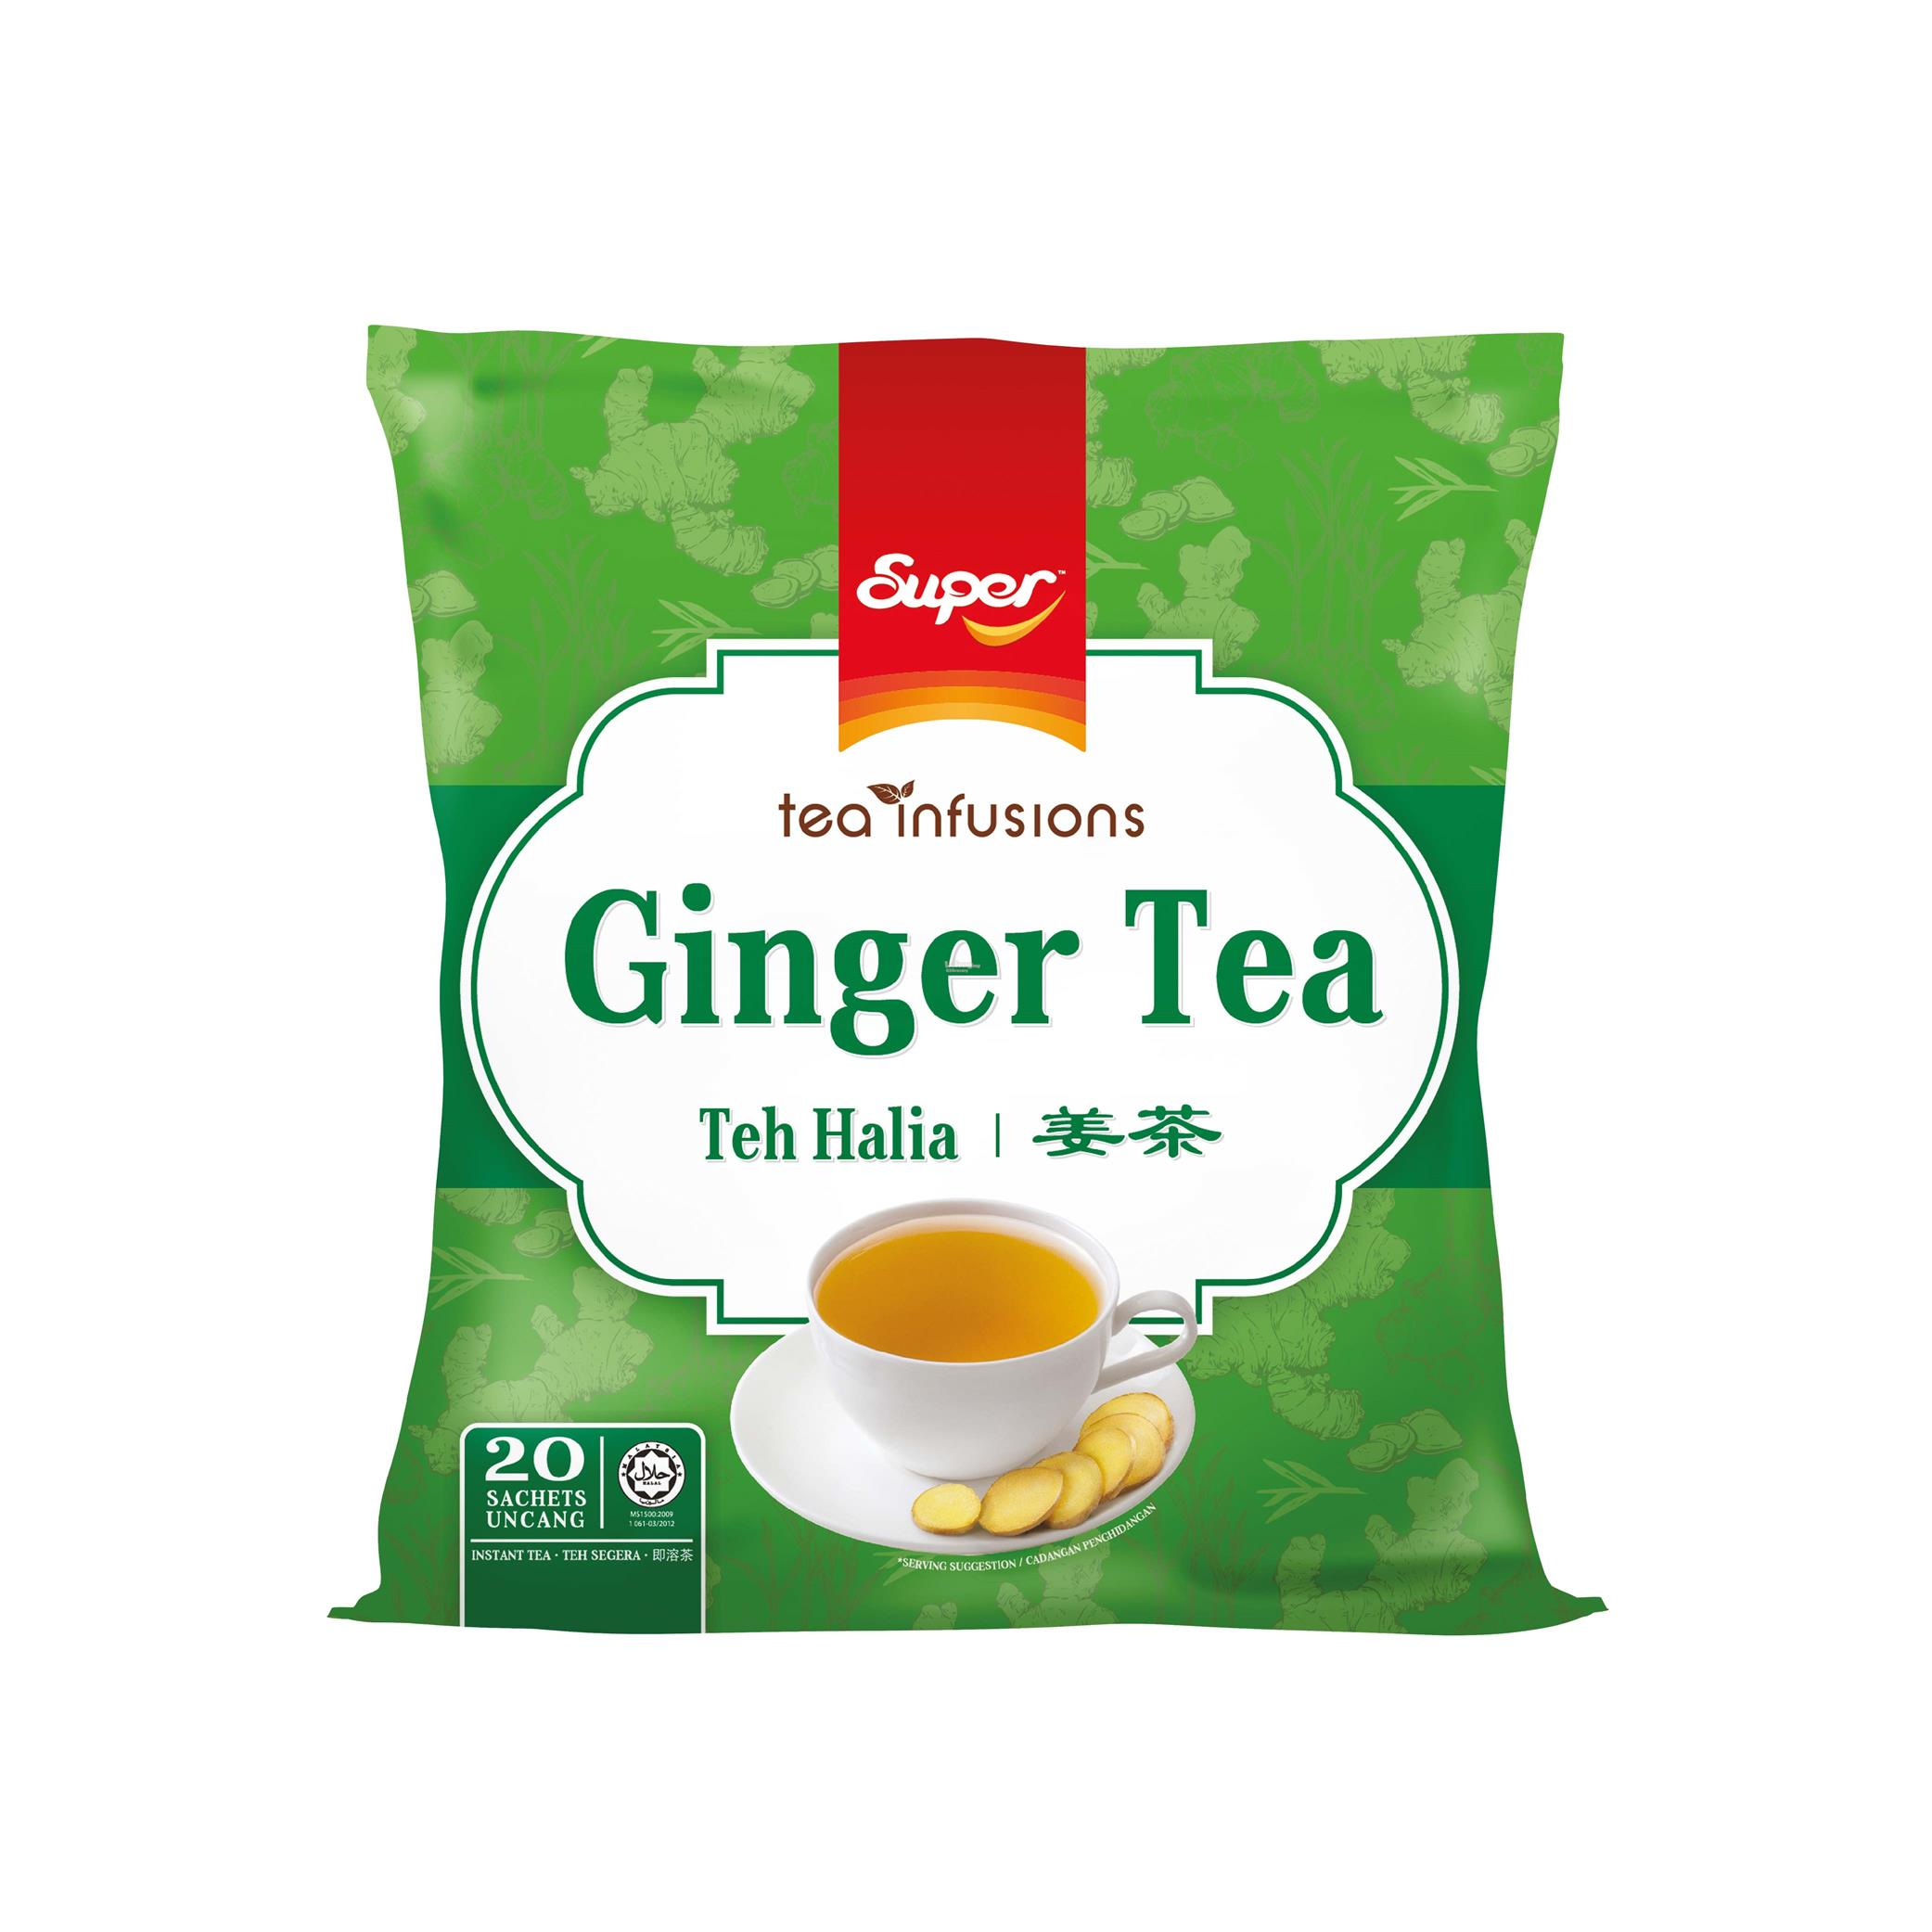 Super Ginger Tea (20gm x 20 sachets)